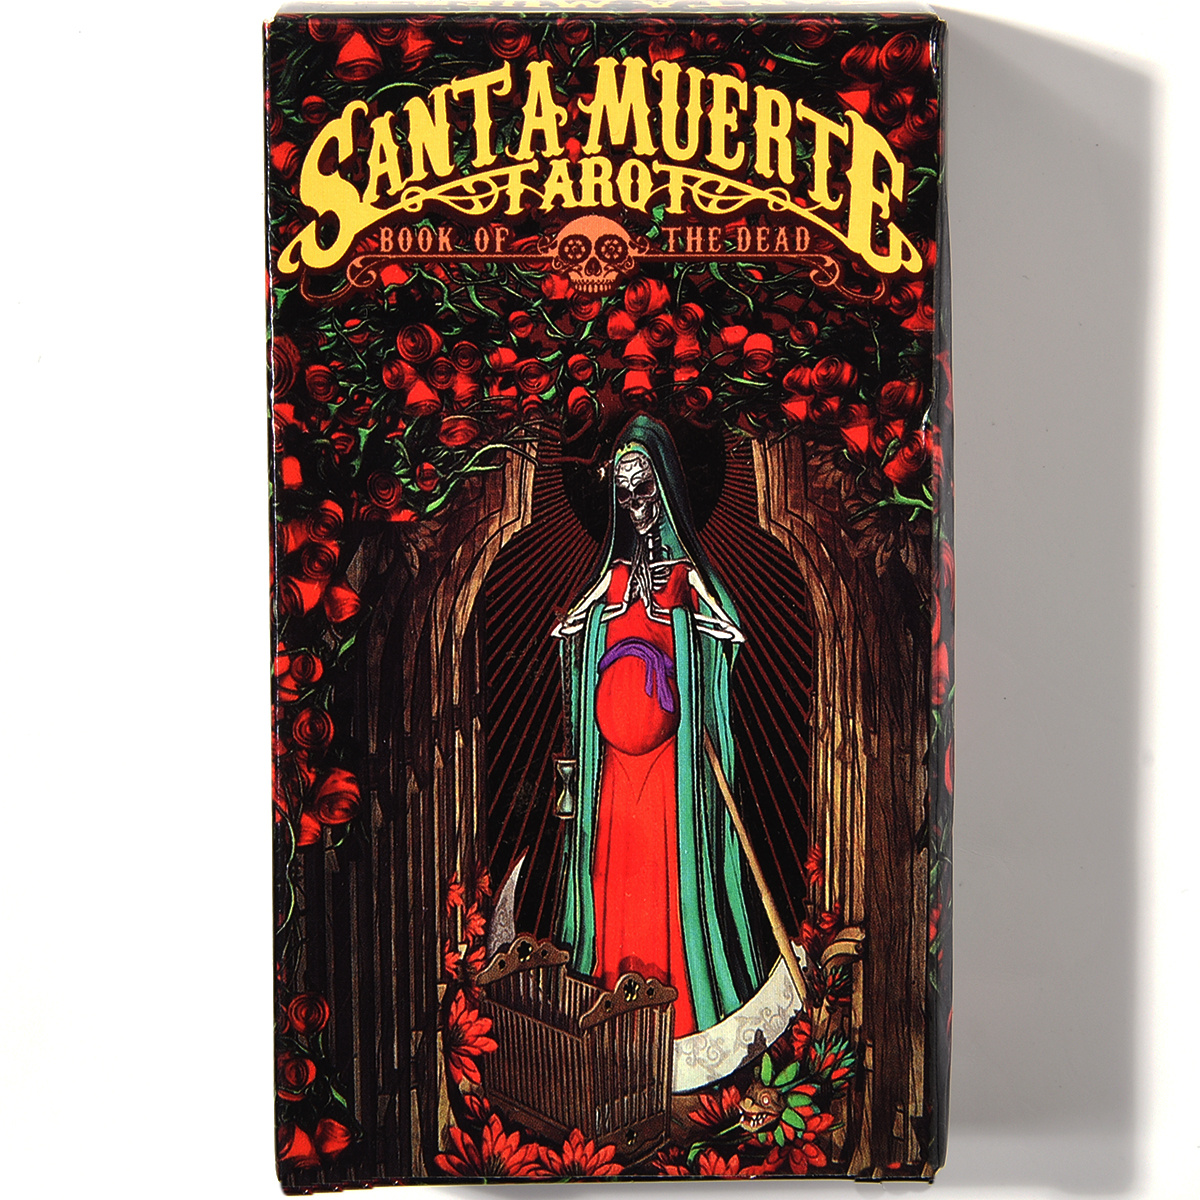 Santa Muerte Tarot Deck Book Of The Dead Oracle Cards Game  By Fabio Listrani Day Of The Dead Themed Magic